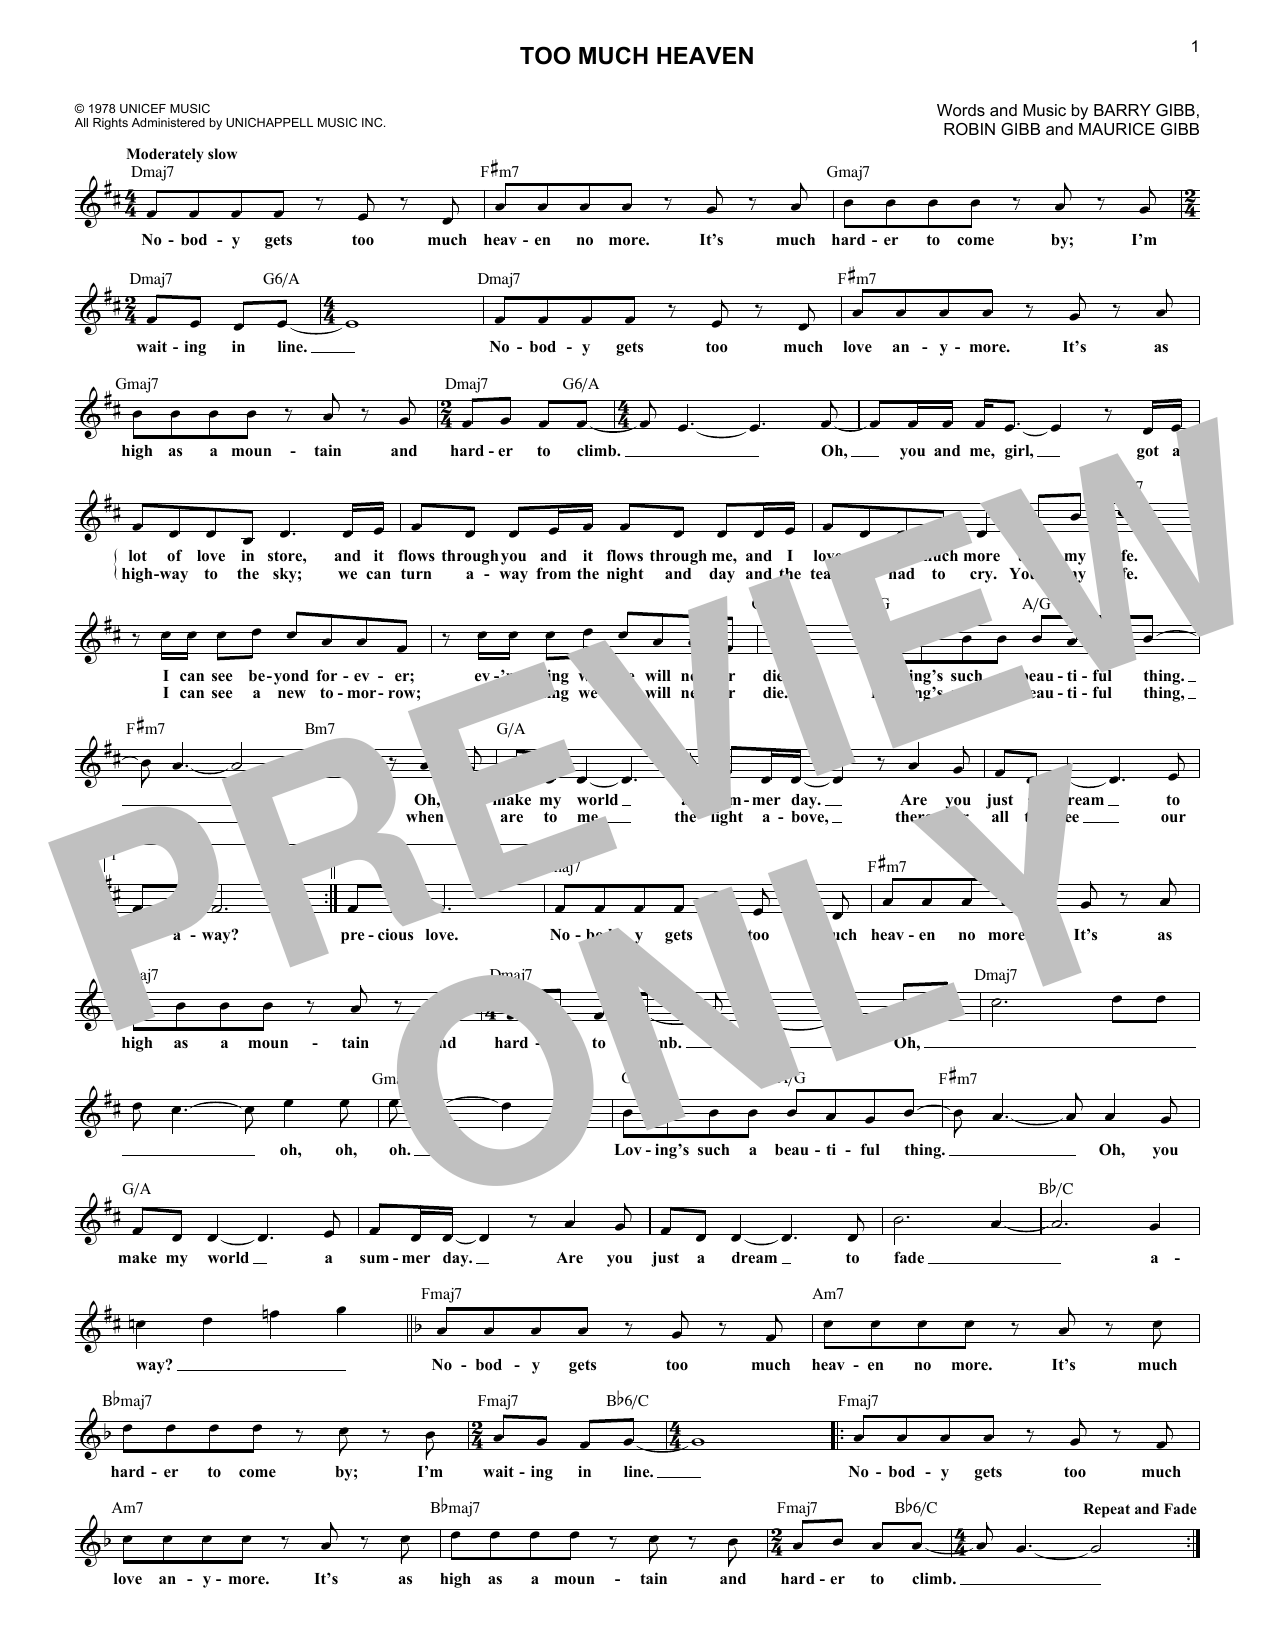 Bee Gees Too Much Heaven sheet music notes and chords